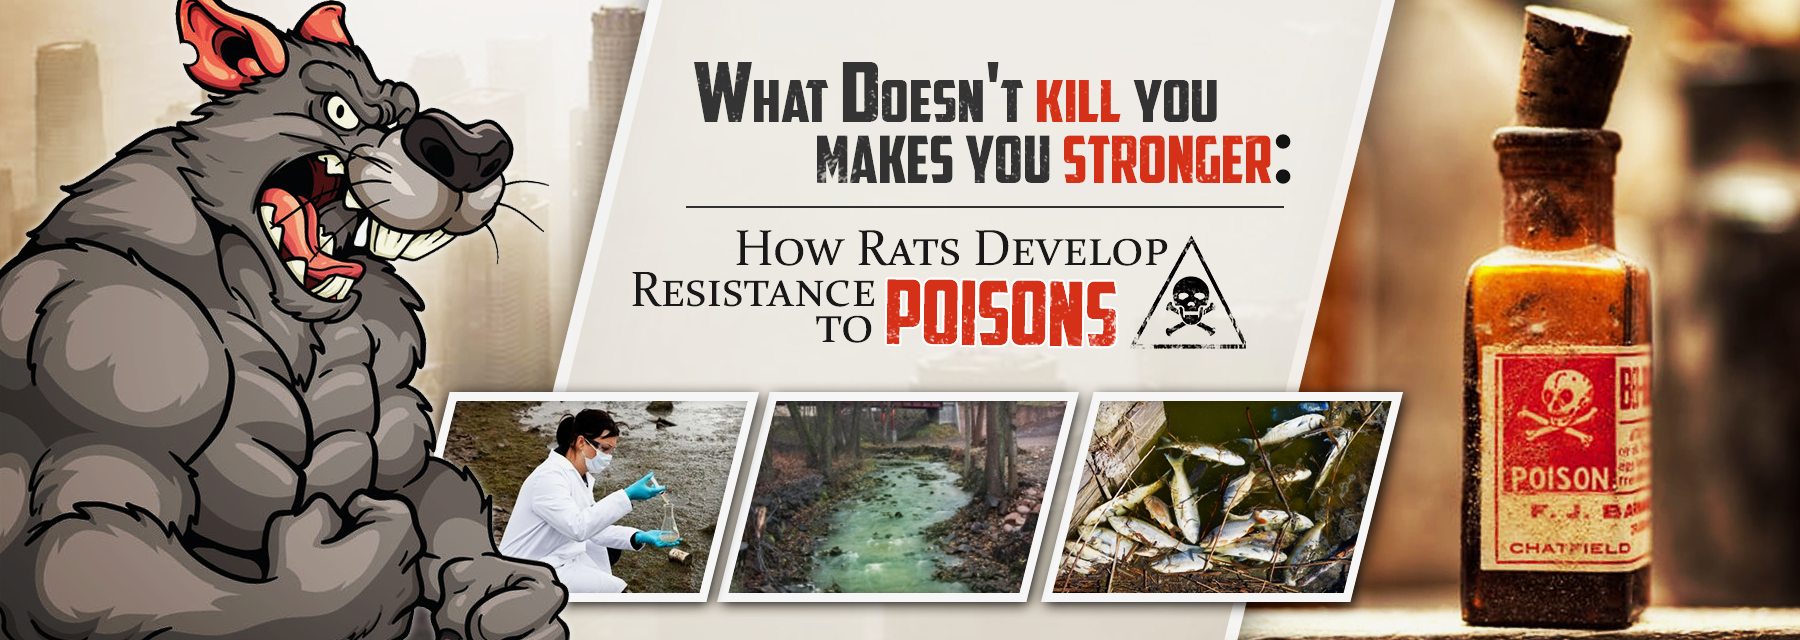 Collateral Damage Rat Poison Kills More Than Rats The